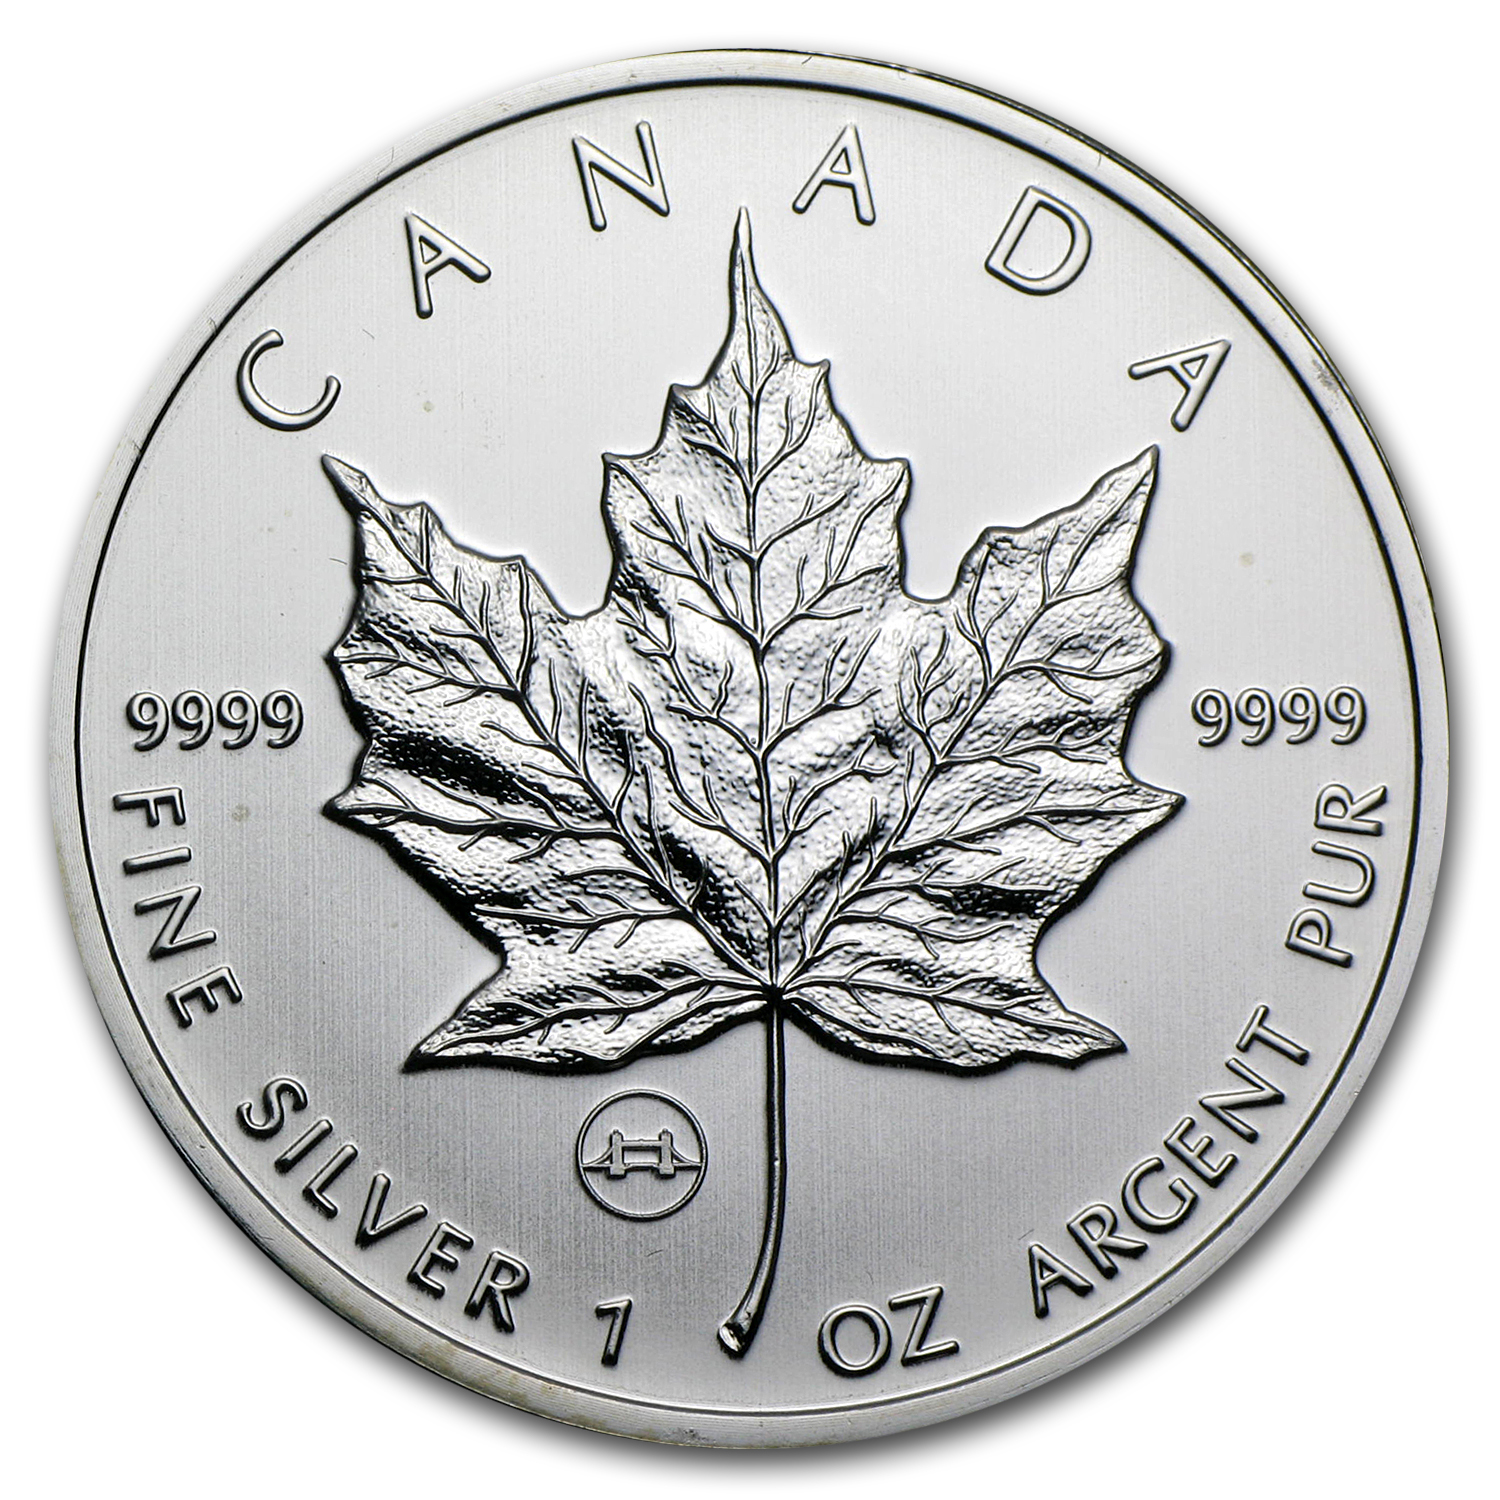 2009 1 oz Silver Canadian Maple Leaf - Tower Bridge Privy